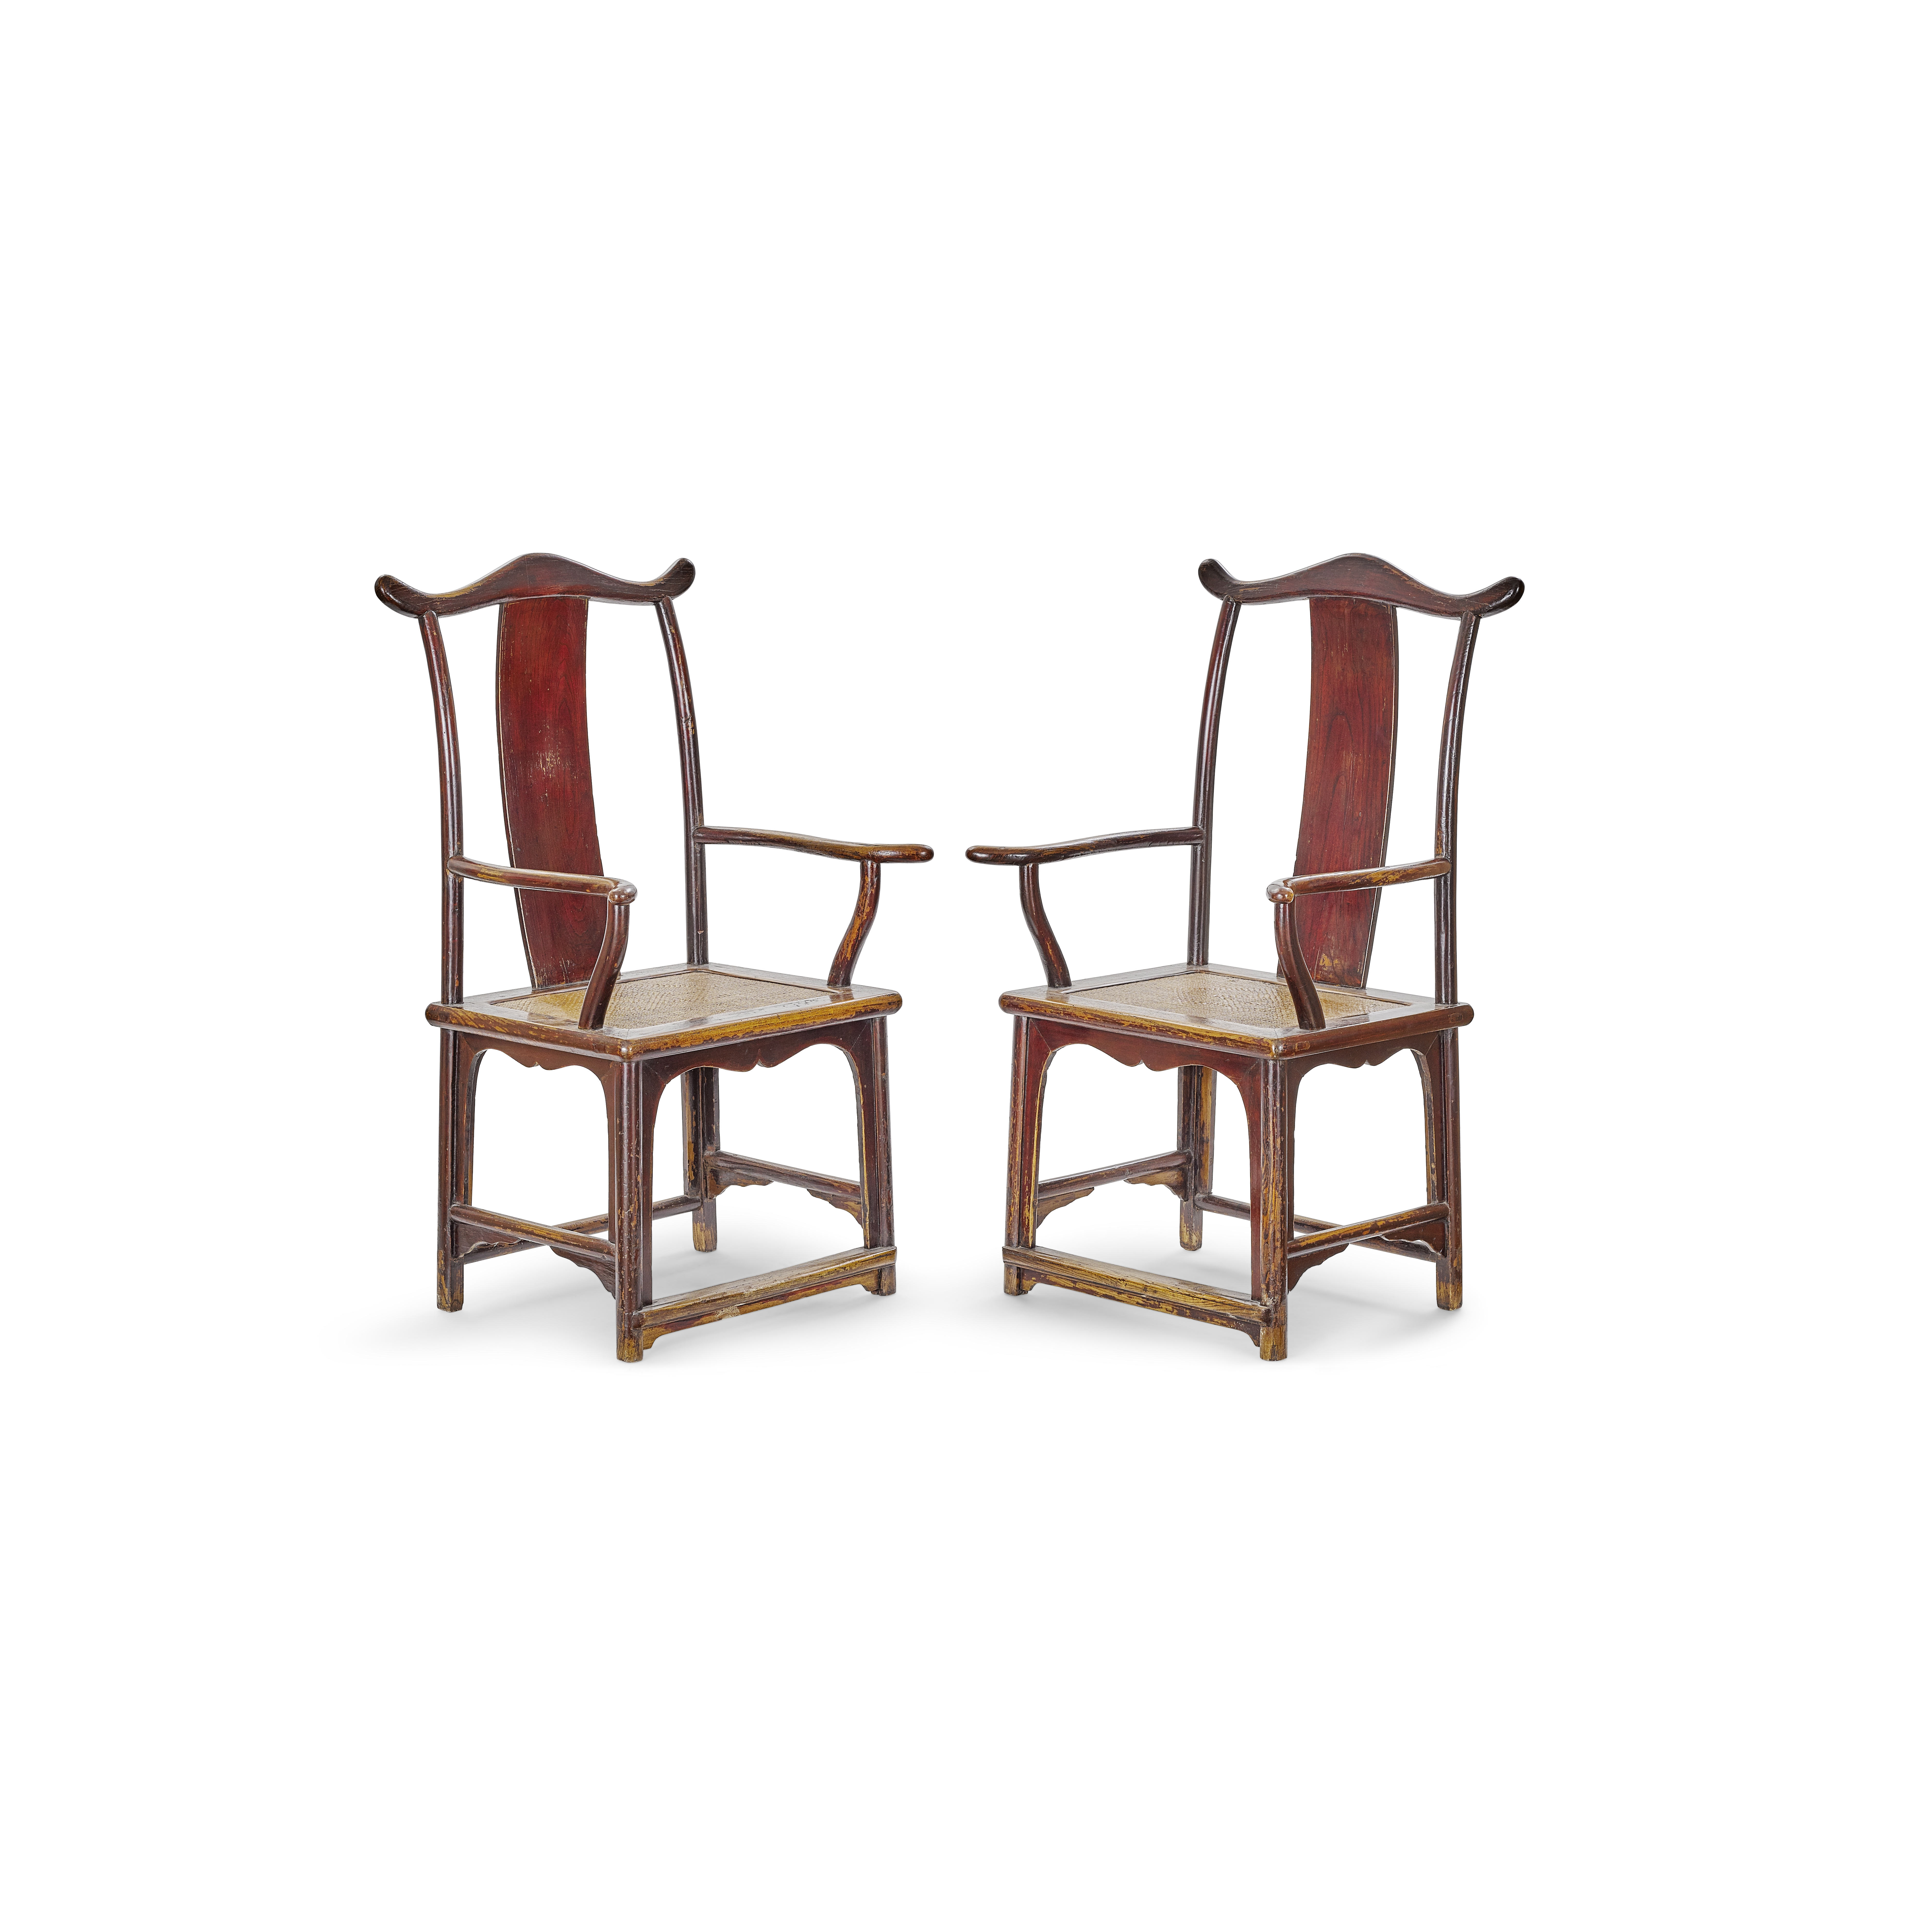 Lot 254 - A pair of Chinese Huaimu armchairs 18th century, Shanxi